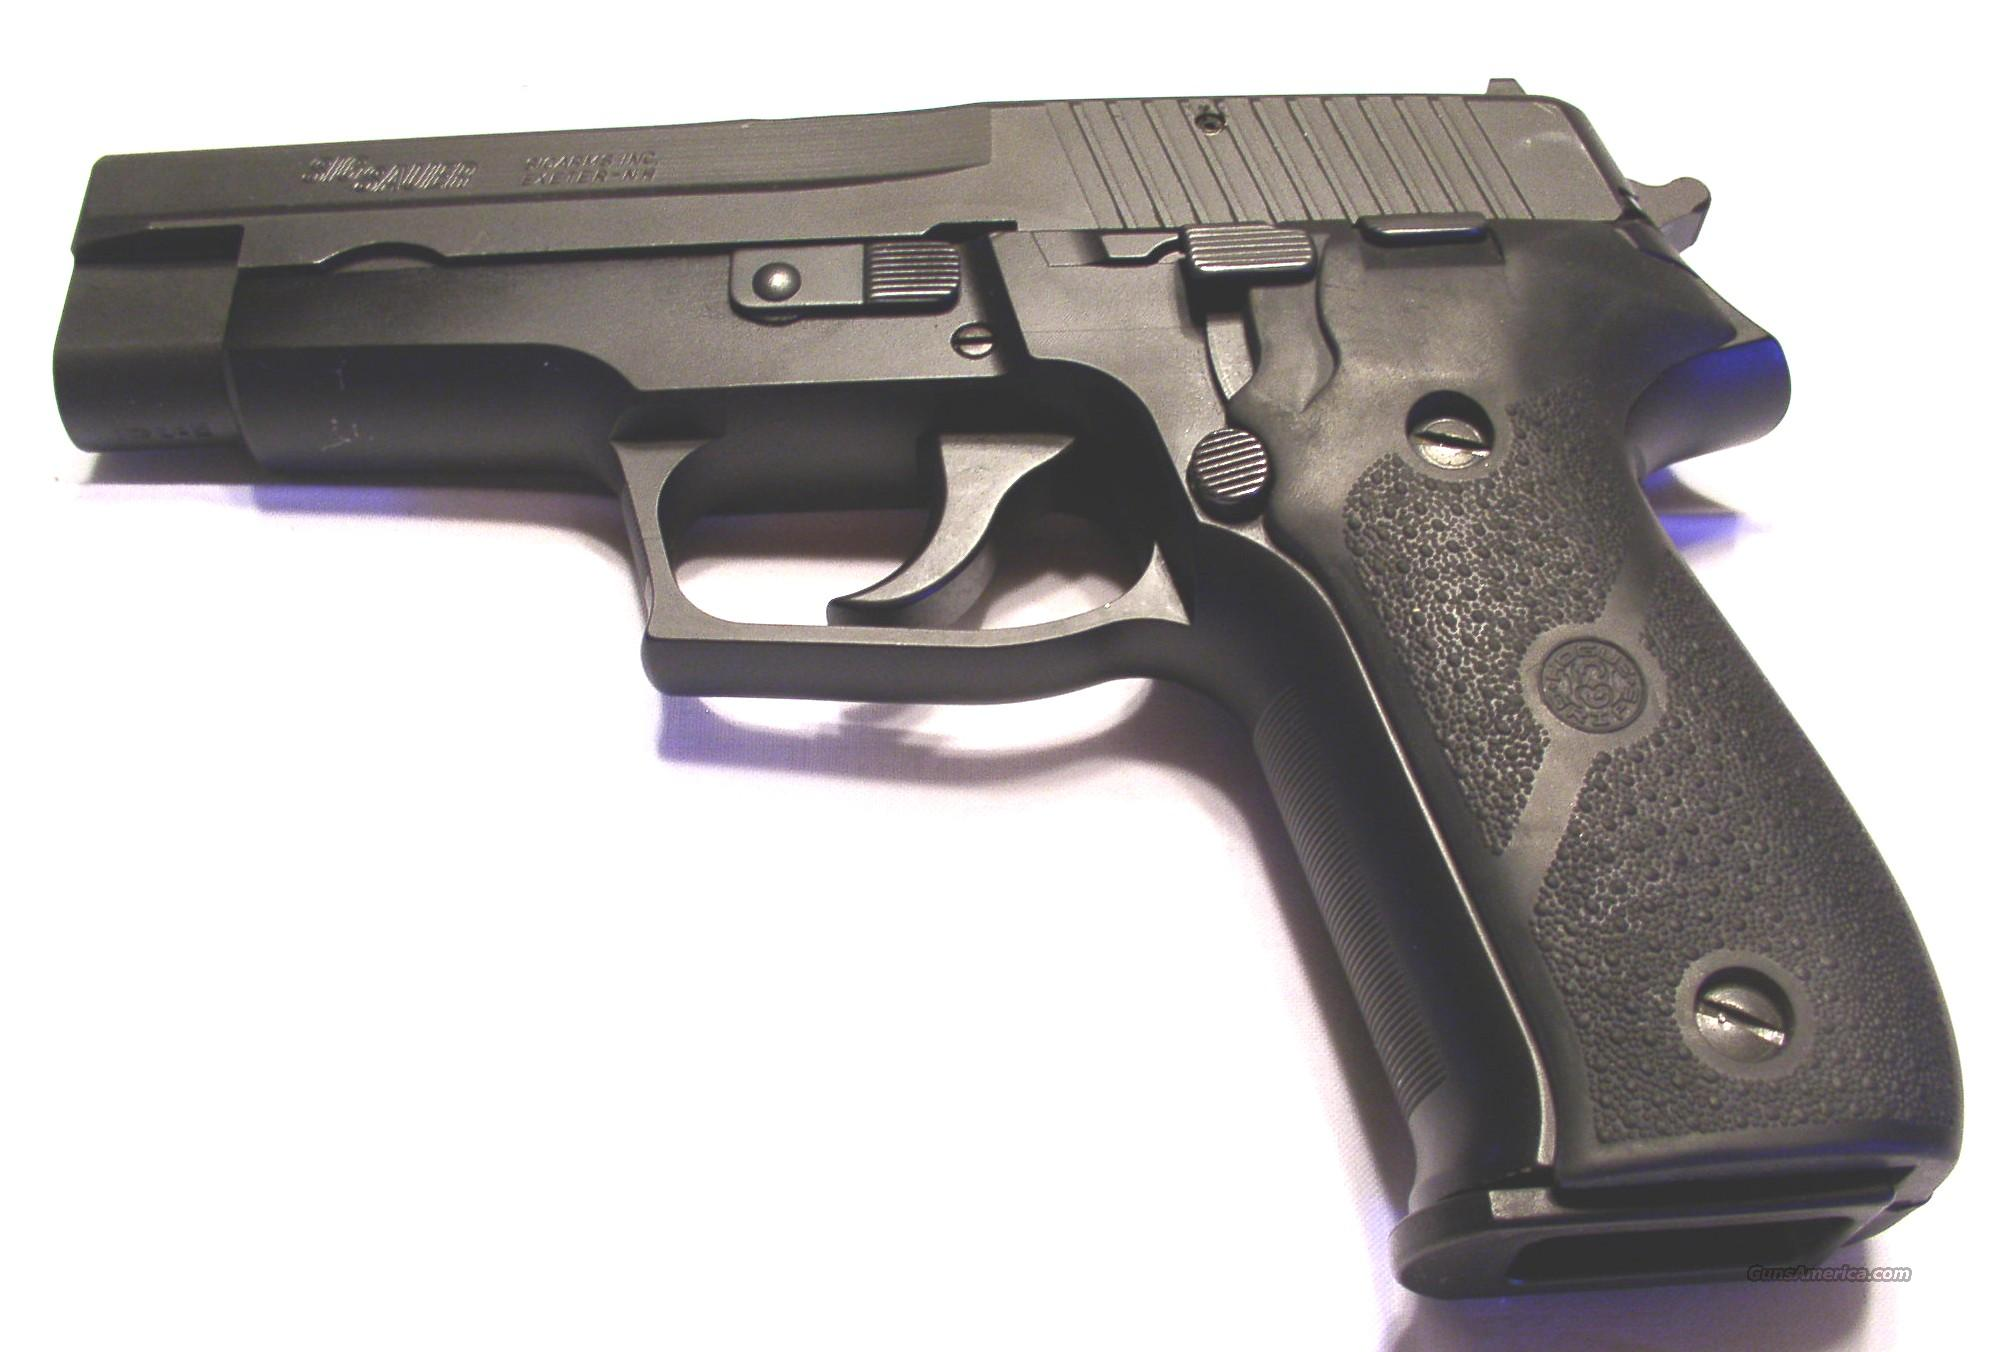 Sigarms P226  Guns > Pistols > Sig - Sauer/Sigarms Pistols > P226